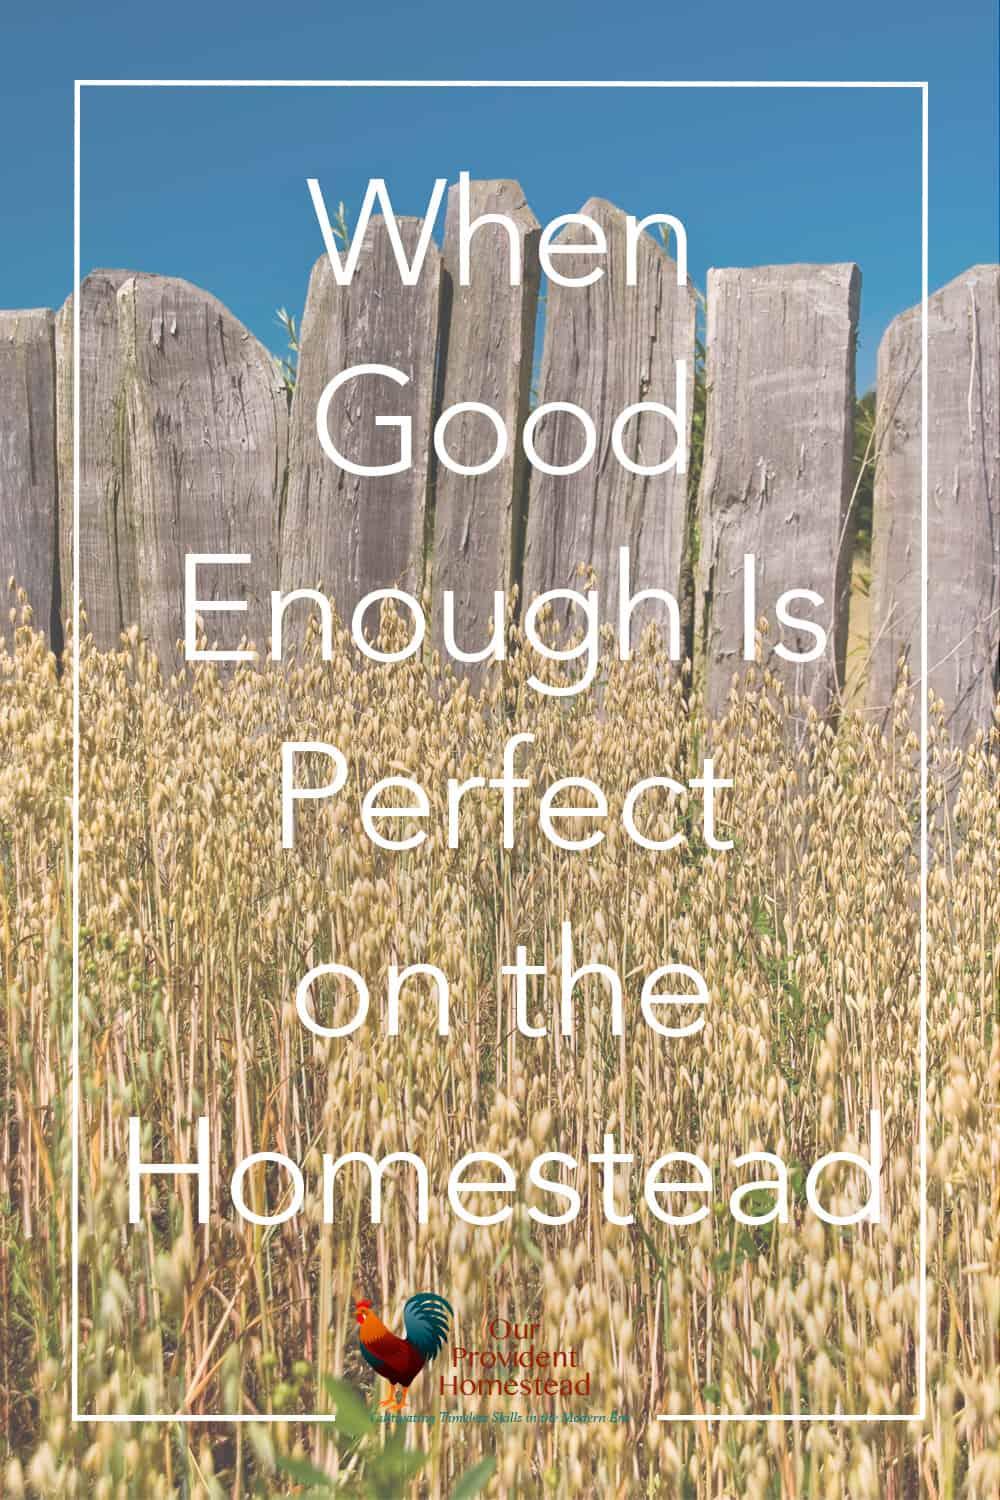 Do you fall prey to the comparison game? Click here to find out when good enough is perfect on the homestead and get things done. Comparison Game   Good Enough   Better than Perfect